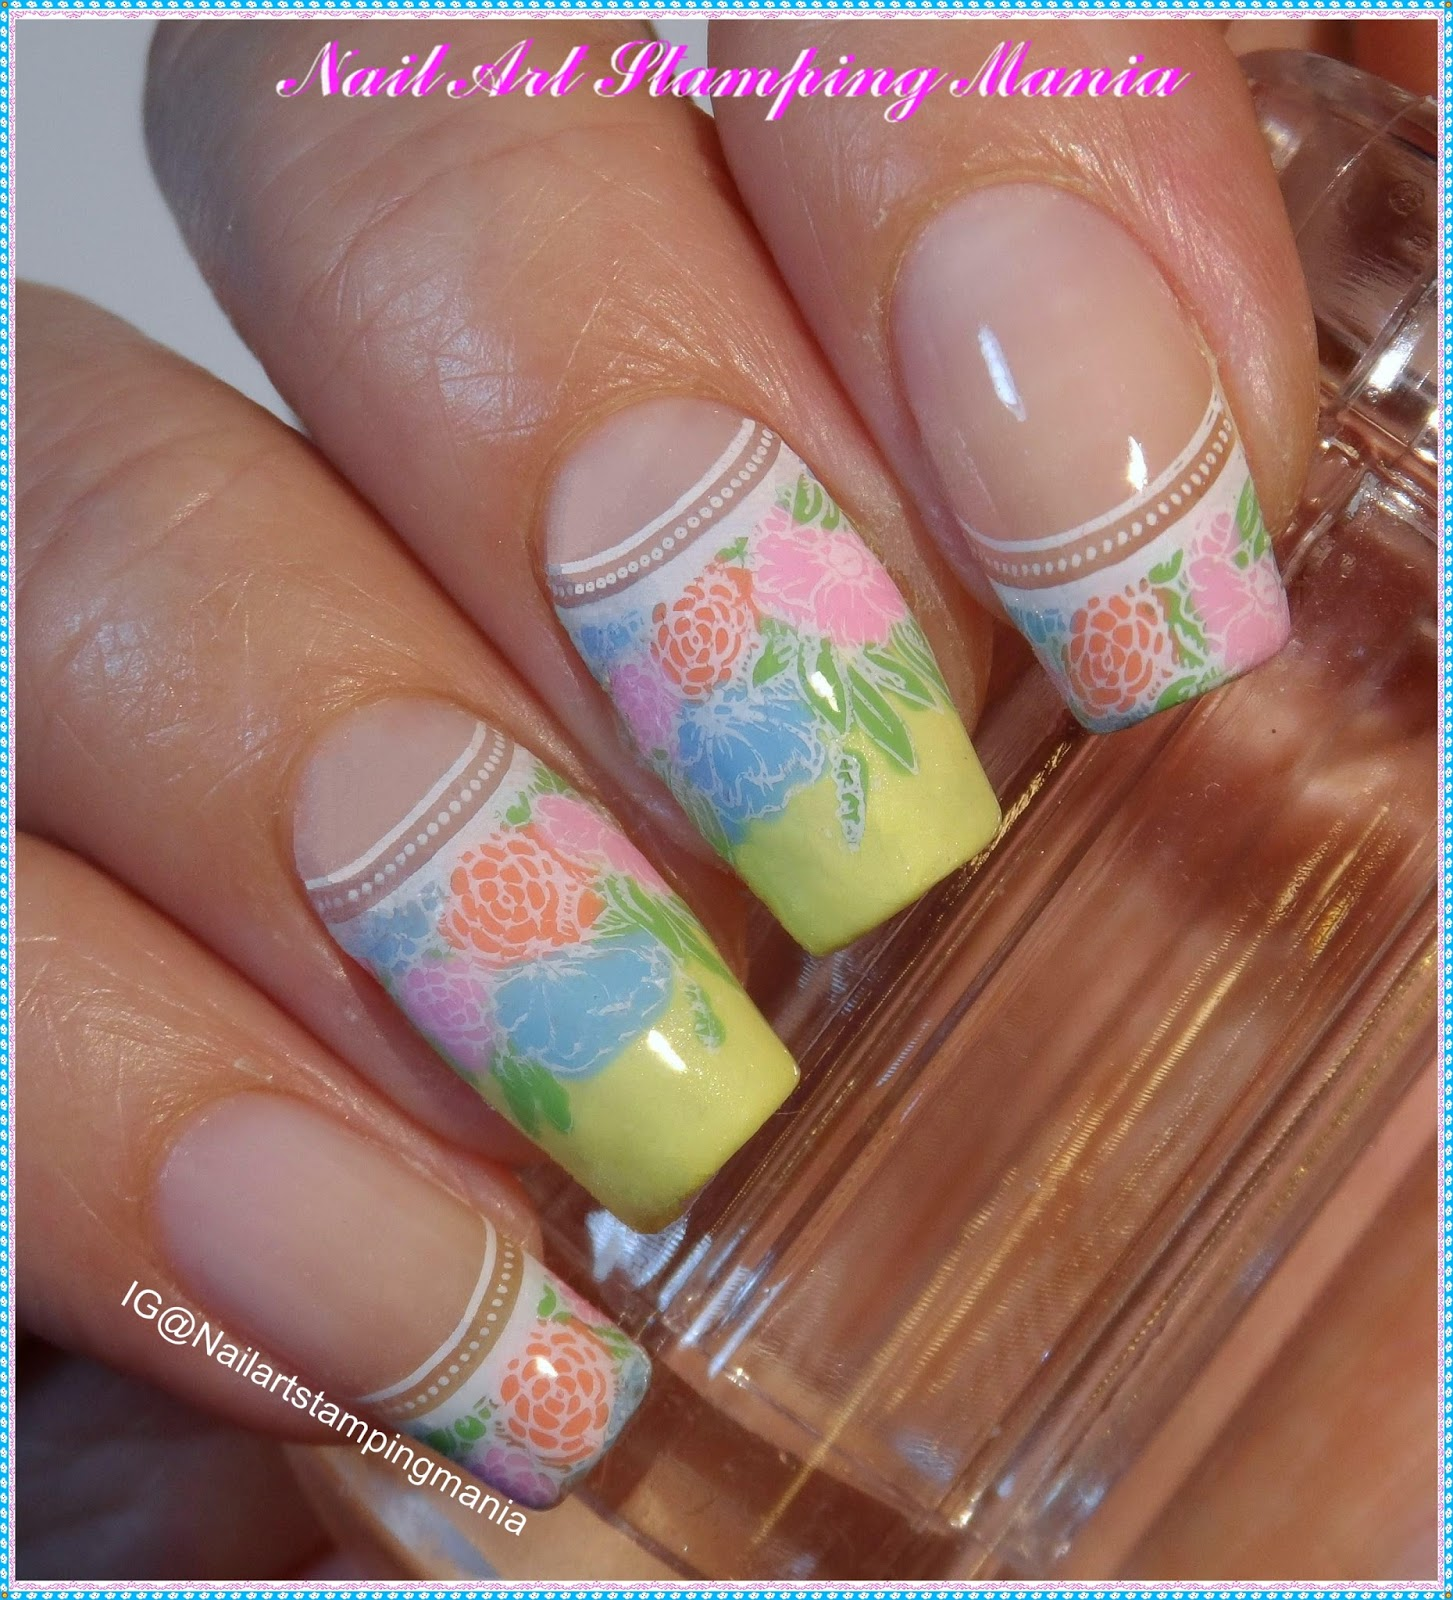 Nail Art Stamping Mania: French Manicure with UberChic Beauty Paris ...